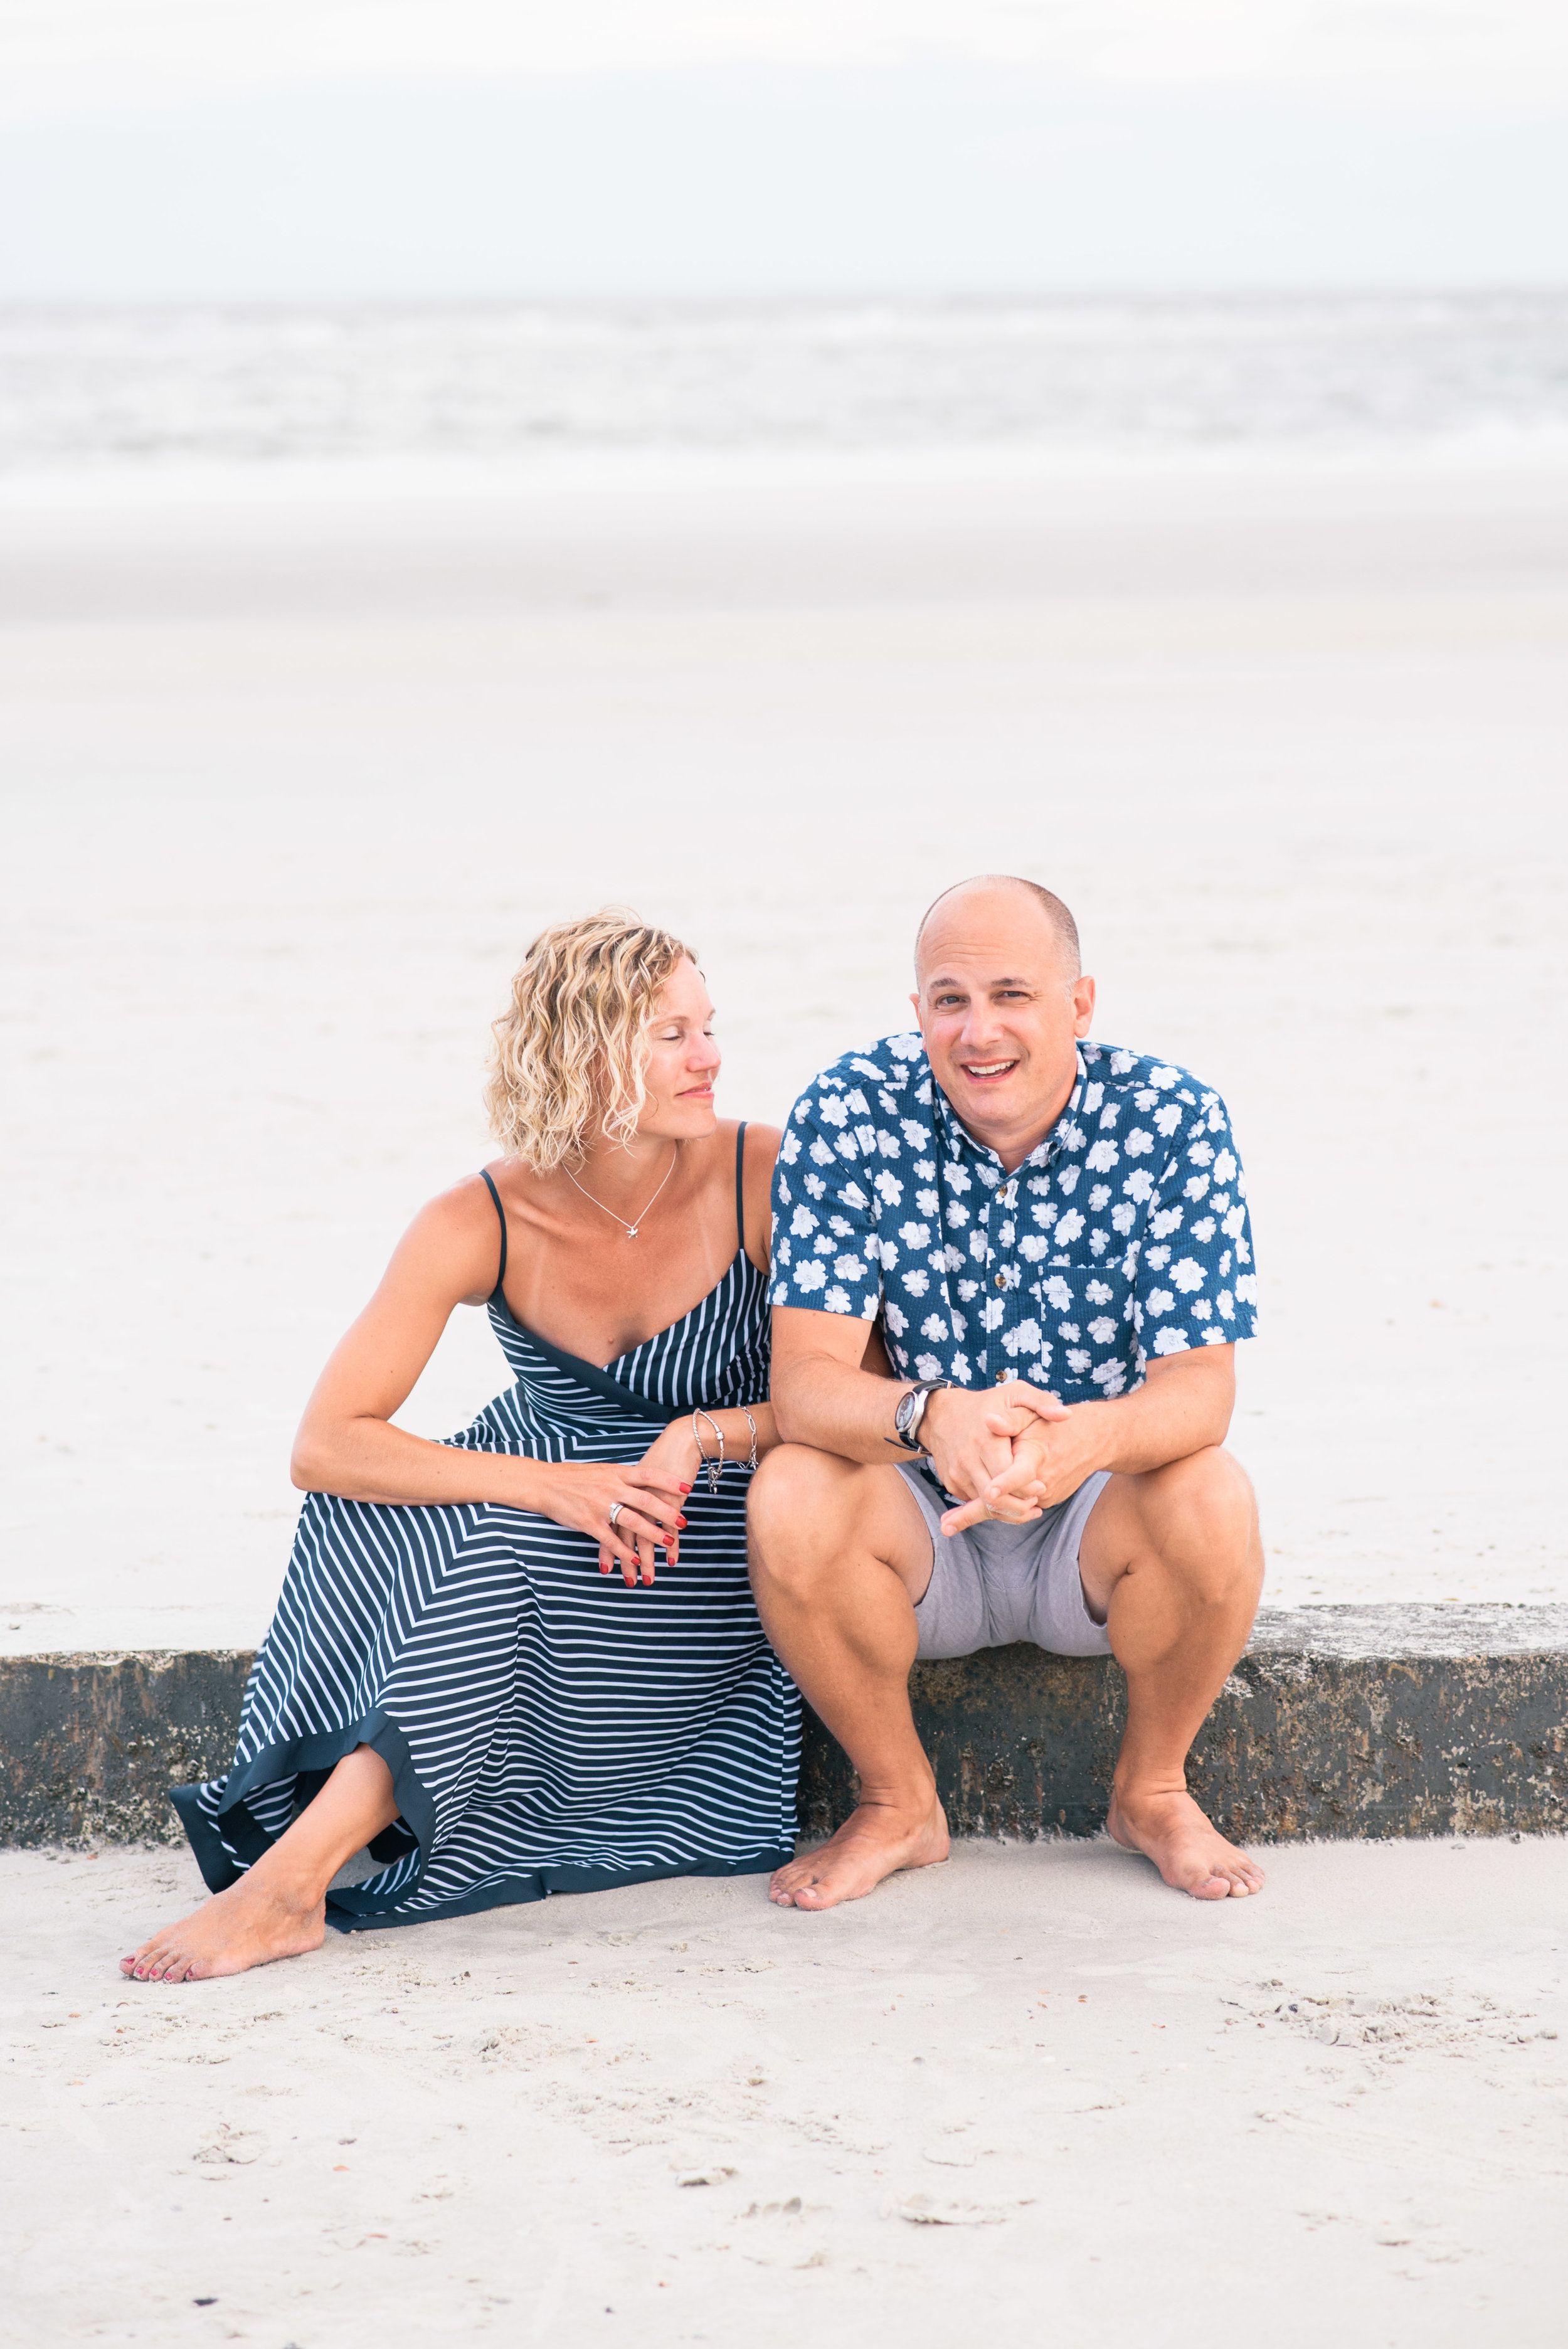 Bill-and-ashley-elope-to-savannah-tybee-island-elopement (125 of 182).jpg